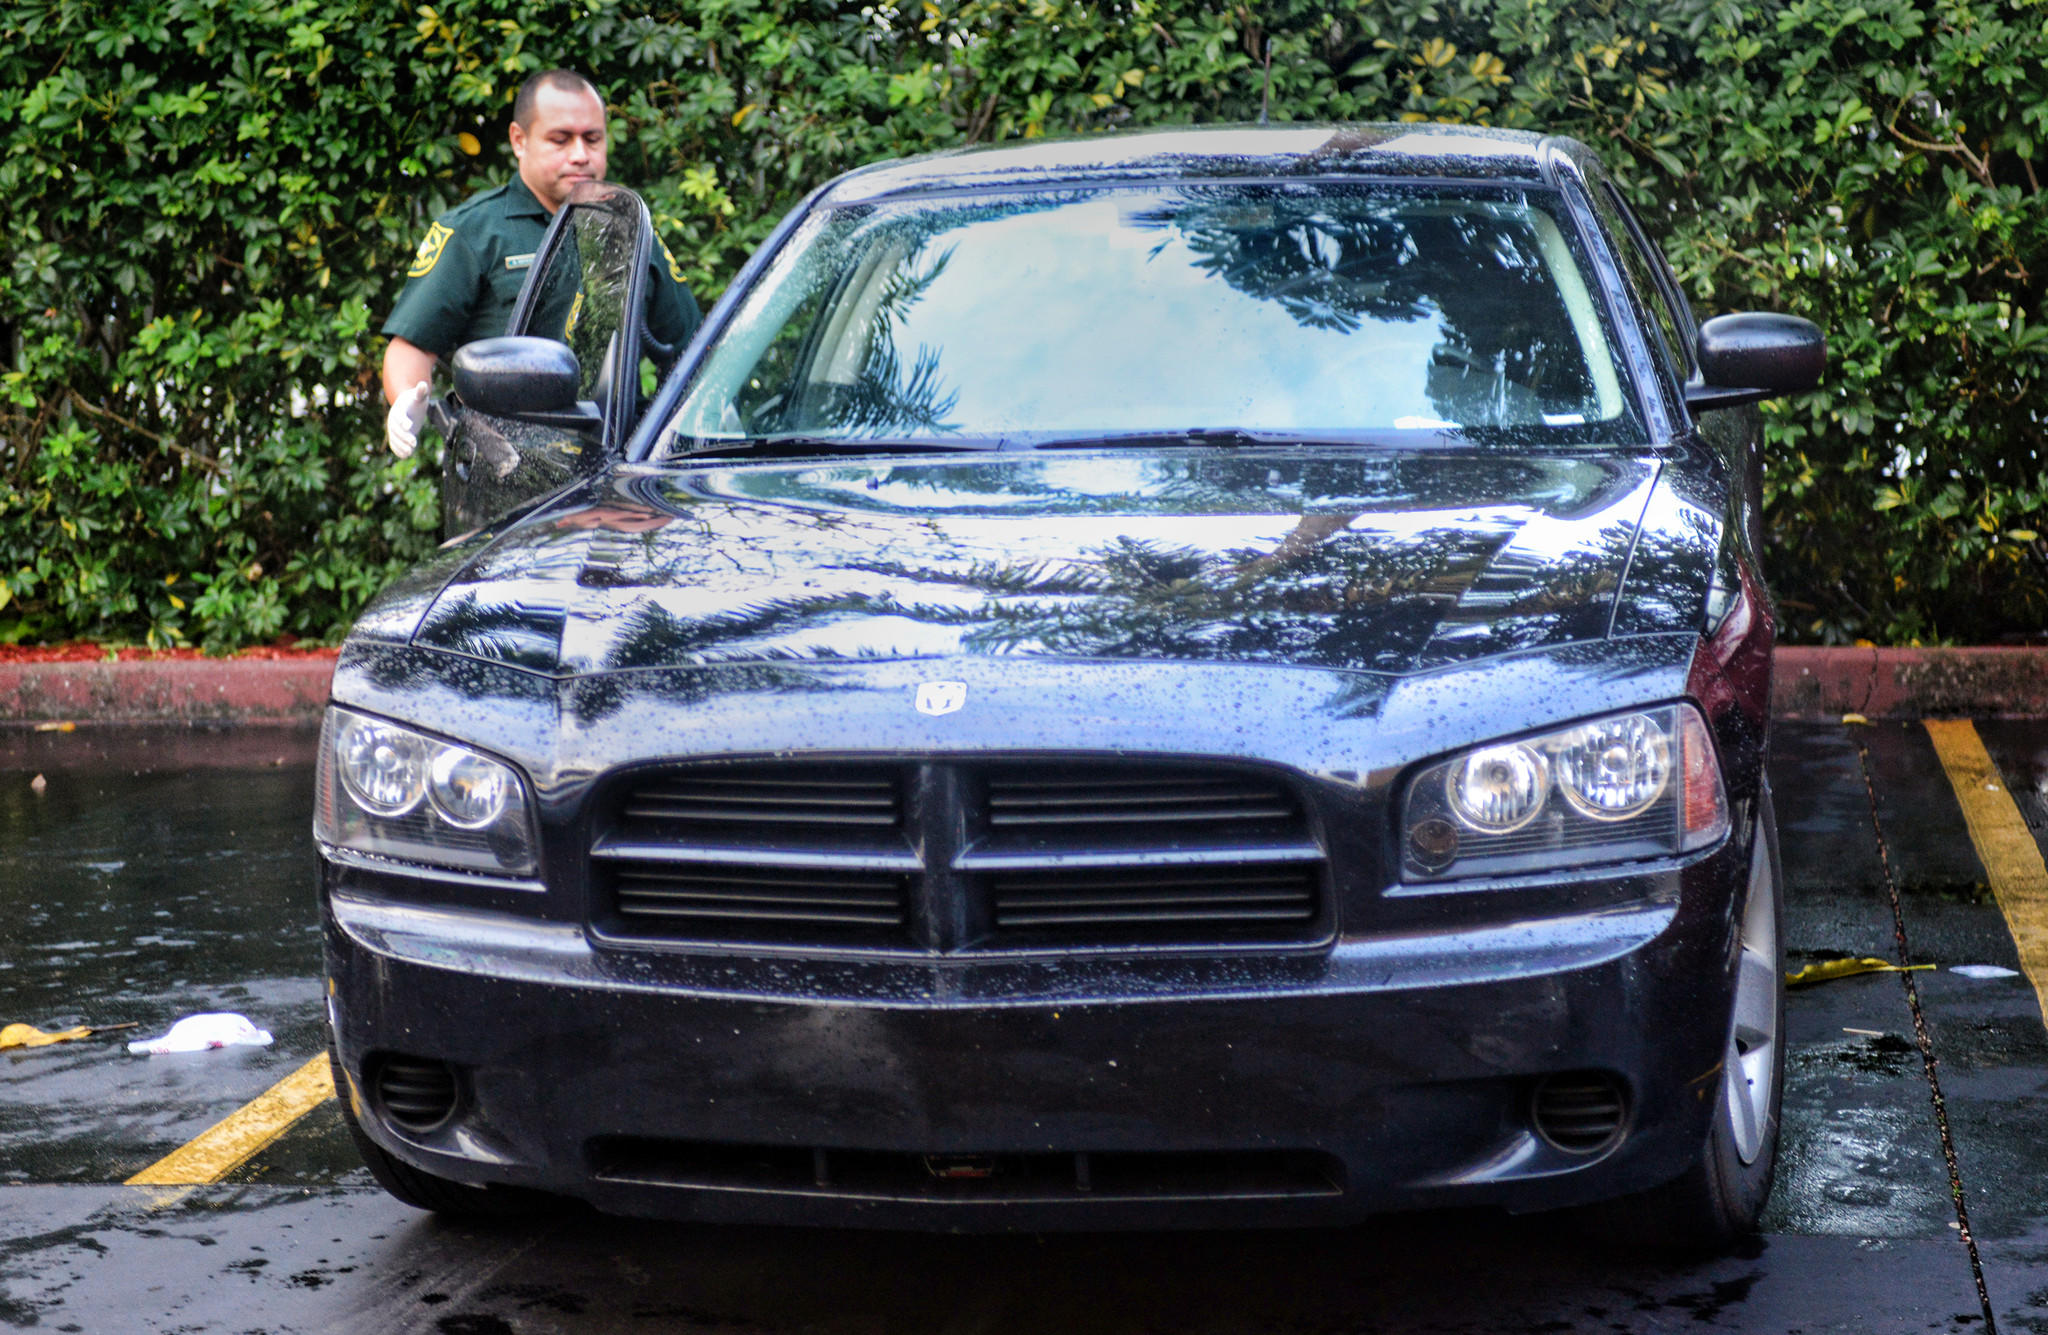 A BSO Deputy examines a recovered undercover Ft. Lauderdale Police Dept. car which was stolen, Wednesday, Jan 15, 2014, at the Days Inn on Oakland Park Blvd., just west of I-95.